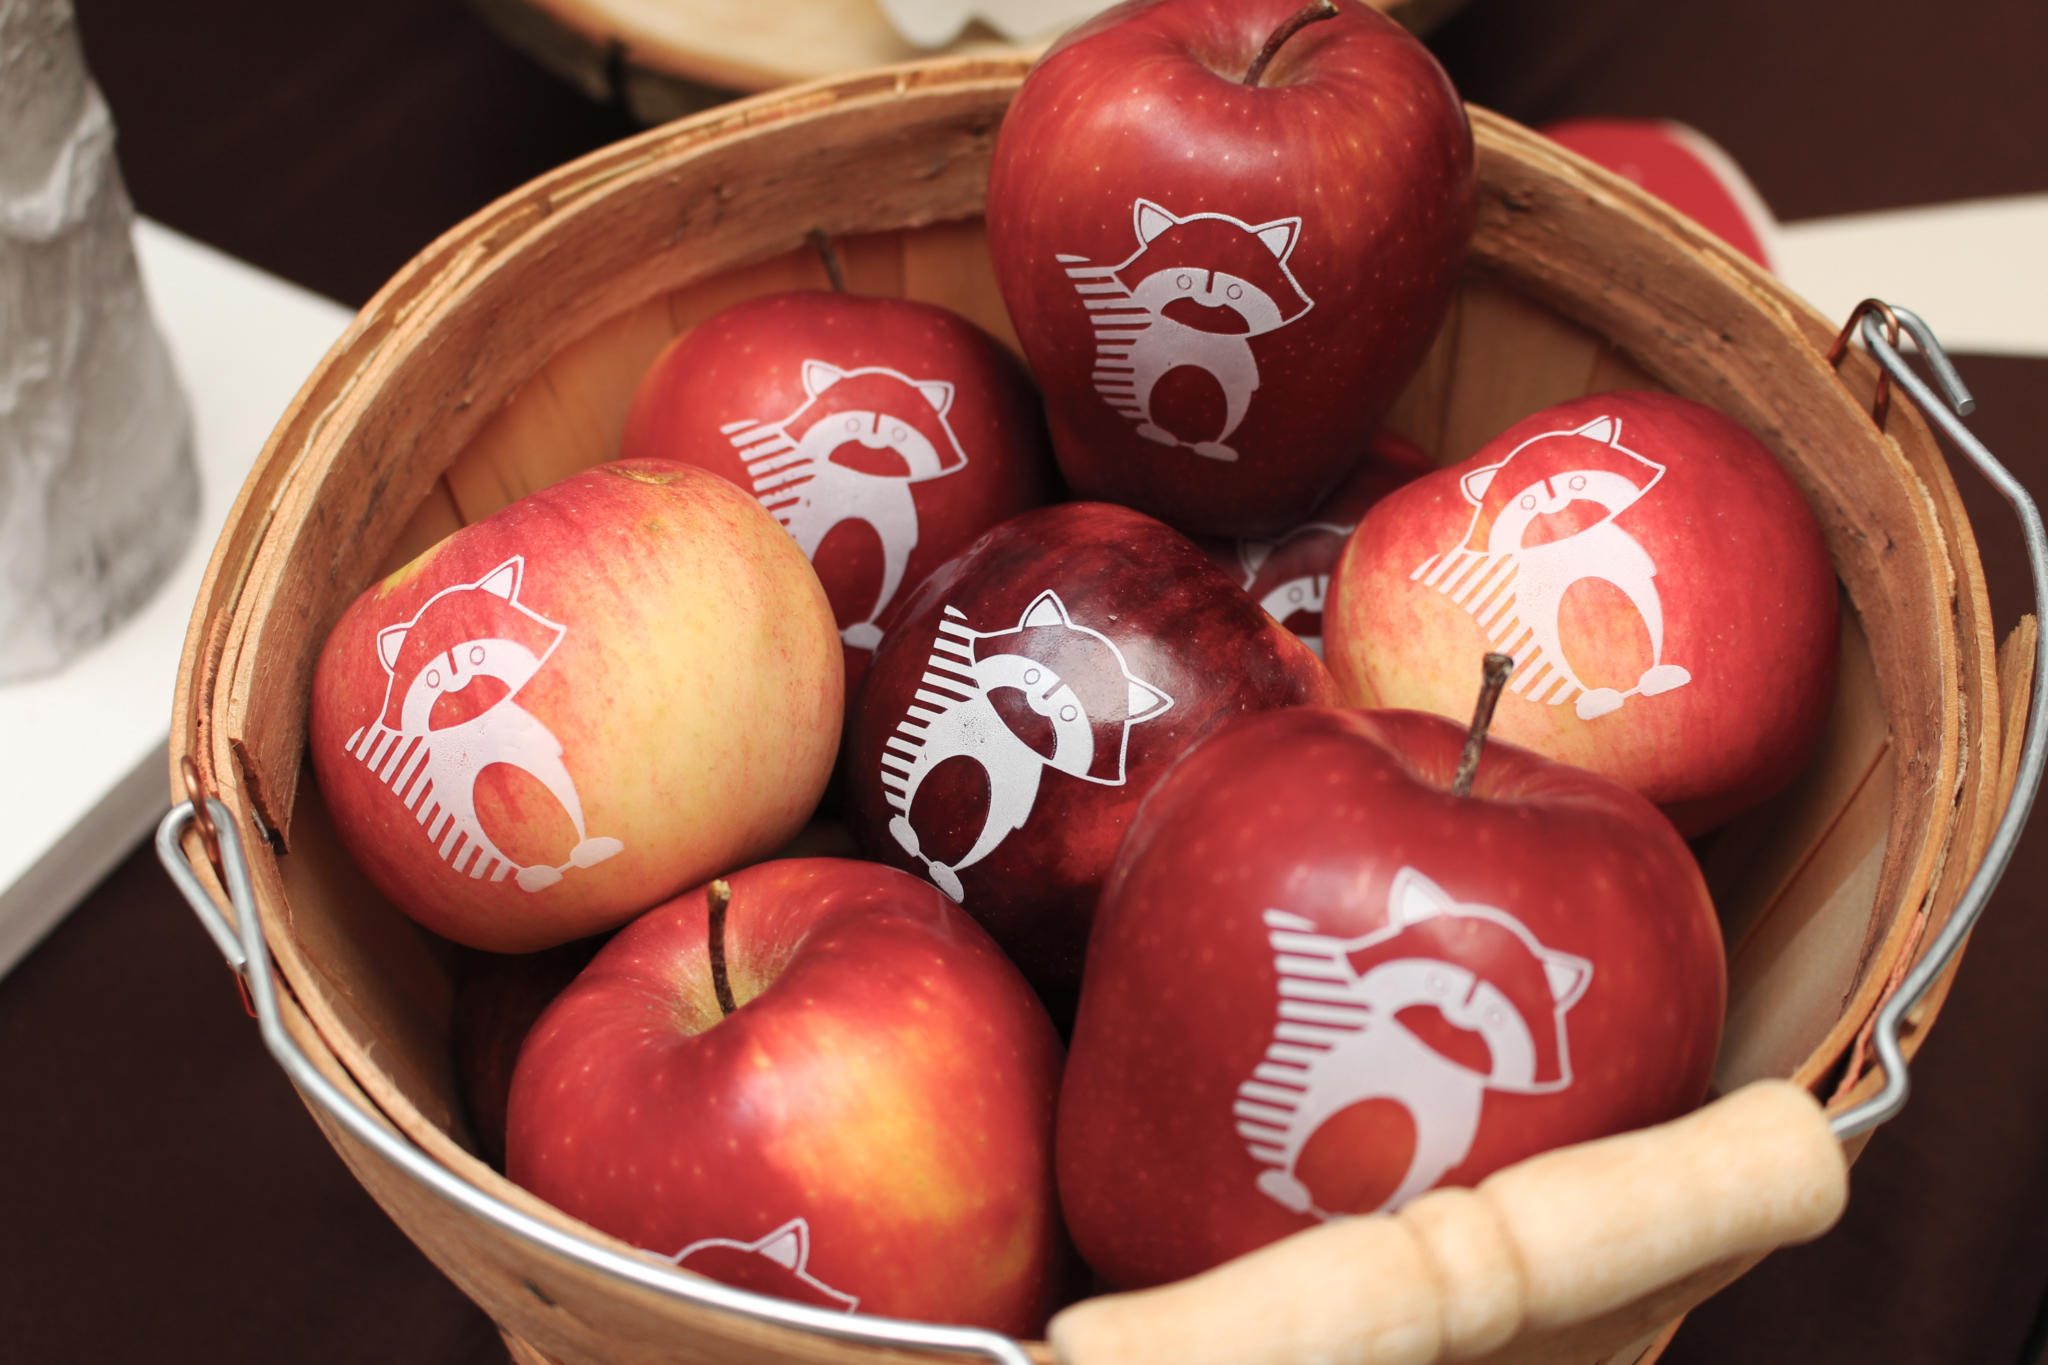 For a healthy favor for your Woodland Birthday Party, how about fun raccoon apples by Fun to Eat Fruit? Click for 11 more ideas for your rustic woodland party on www.funtoeatfruit.com. Party styling by Crowning Details. #woodlandparty #partydecor #birthdayparty #kidsbirthday #partyideas #partyinspiration #apples #ediblefavors